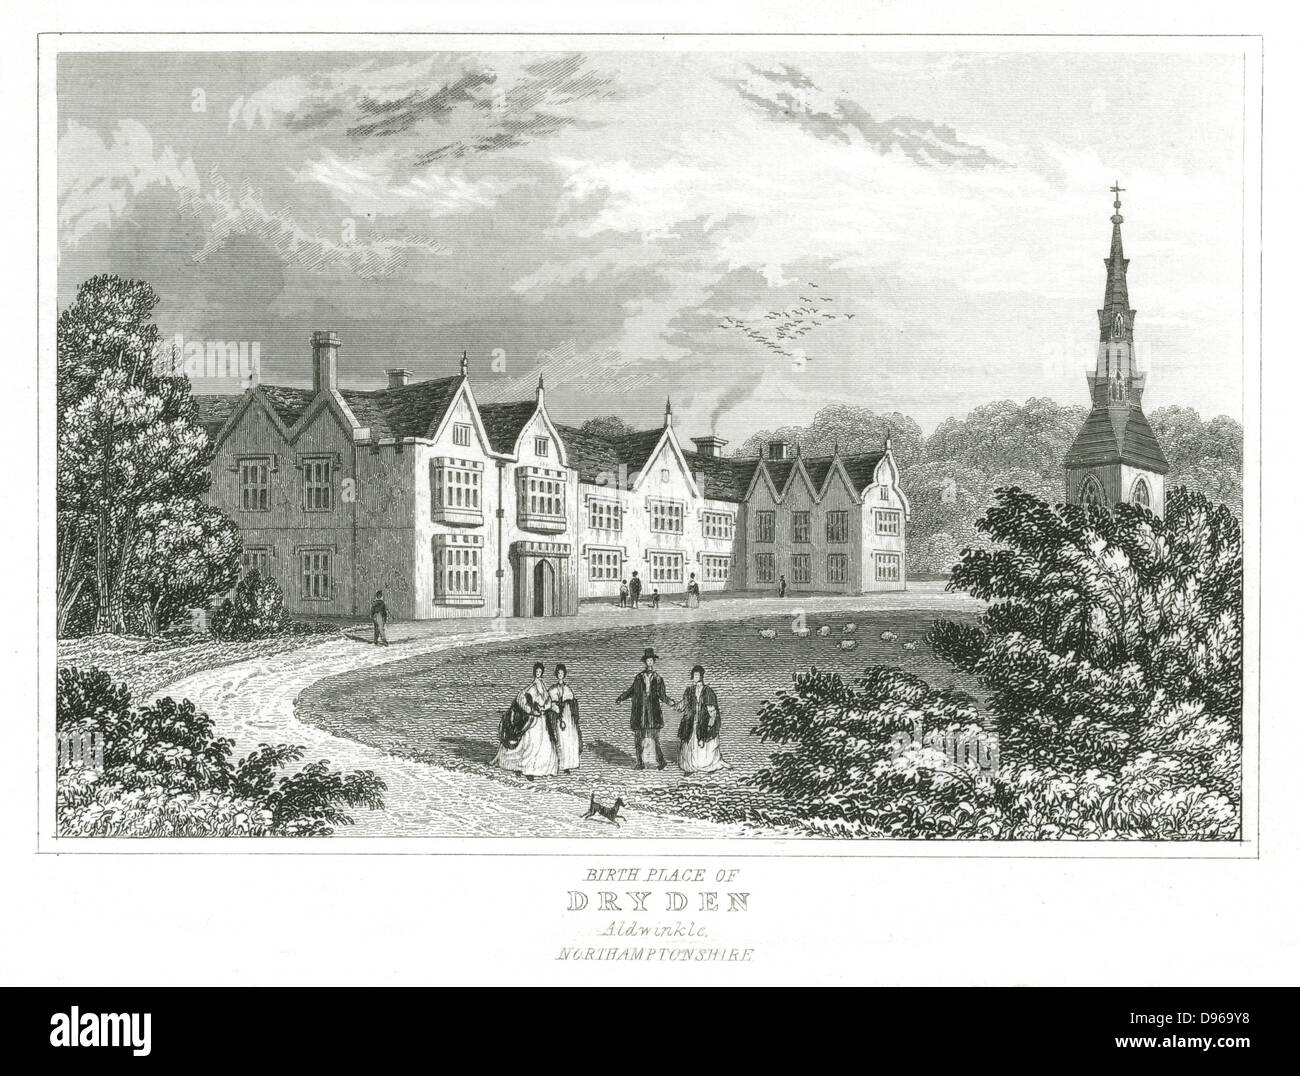 John Dryden (1631-1700)  English poet. Dryden's birthplace at Aldwinkle, Northamptonshire. Engraving - Stock Image